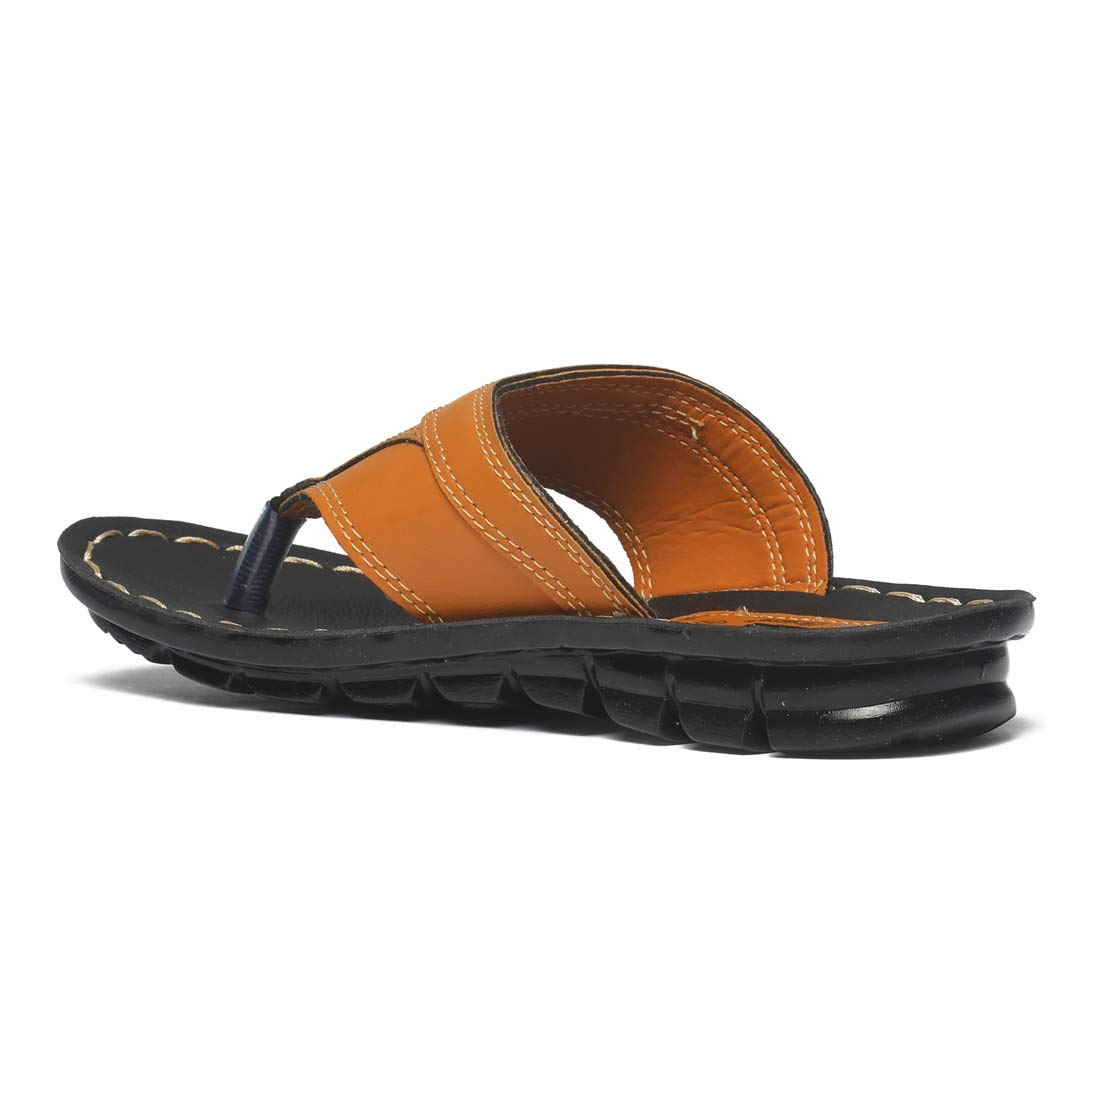 49c7e7844 PARAGON Boys Tan P-Toes Formal Flip Flops: Buy Online at Low Prices in  India - Amazon.in